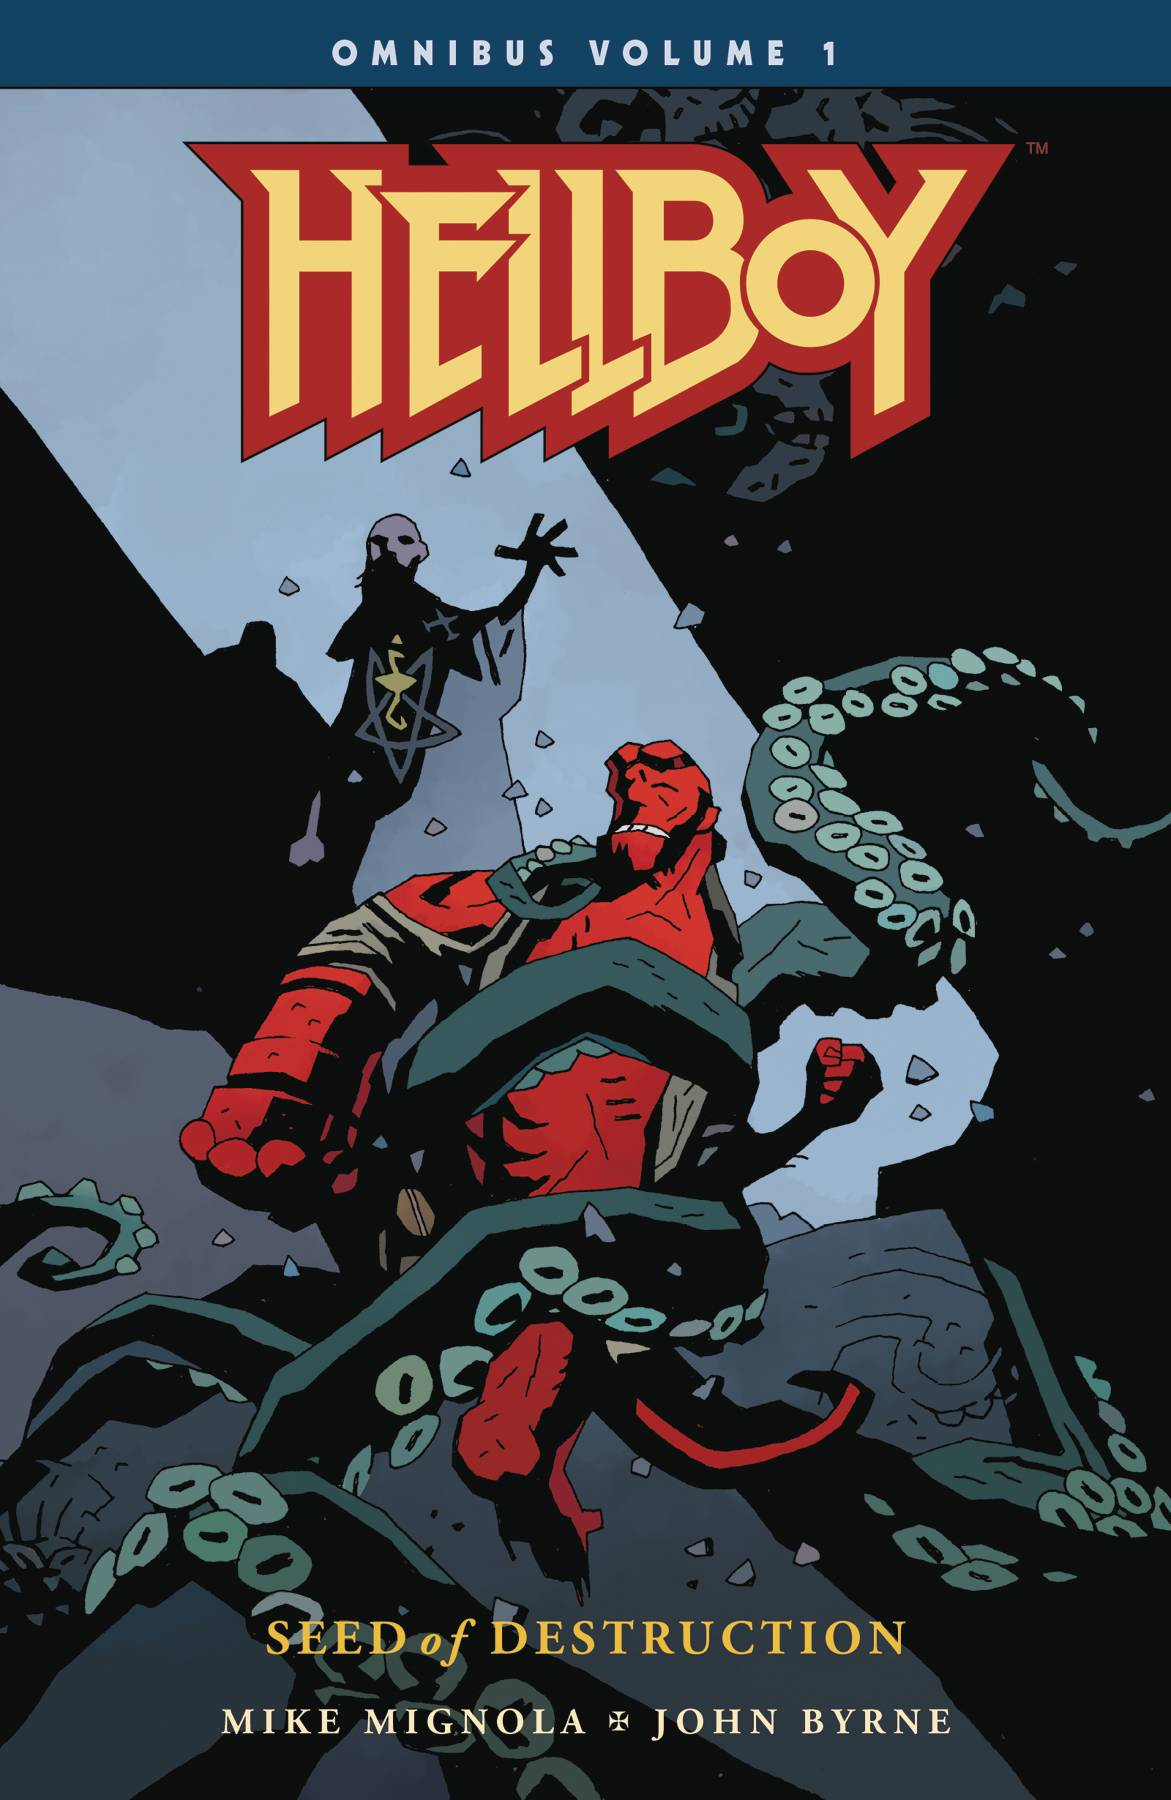 HELLBOY OMNIBUS TP VOL 01 SEED OF DESTRUCTION